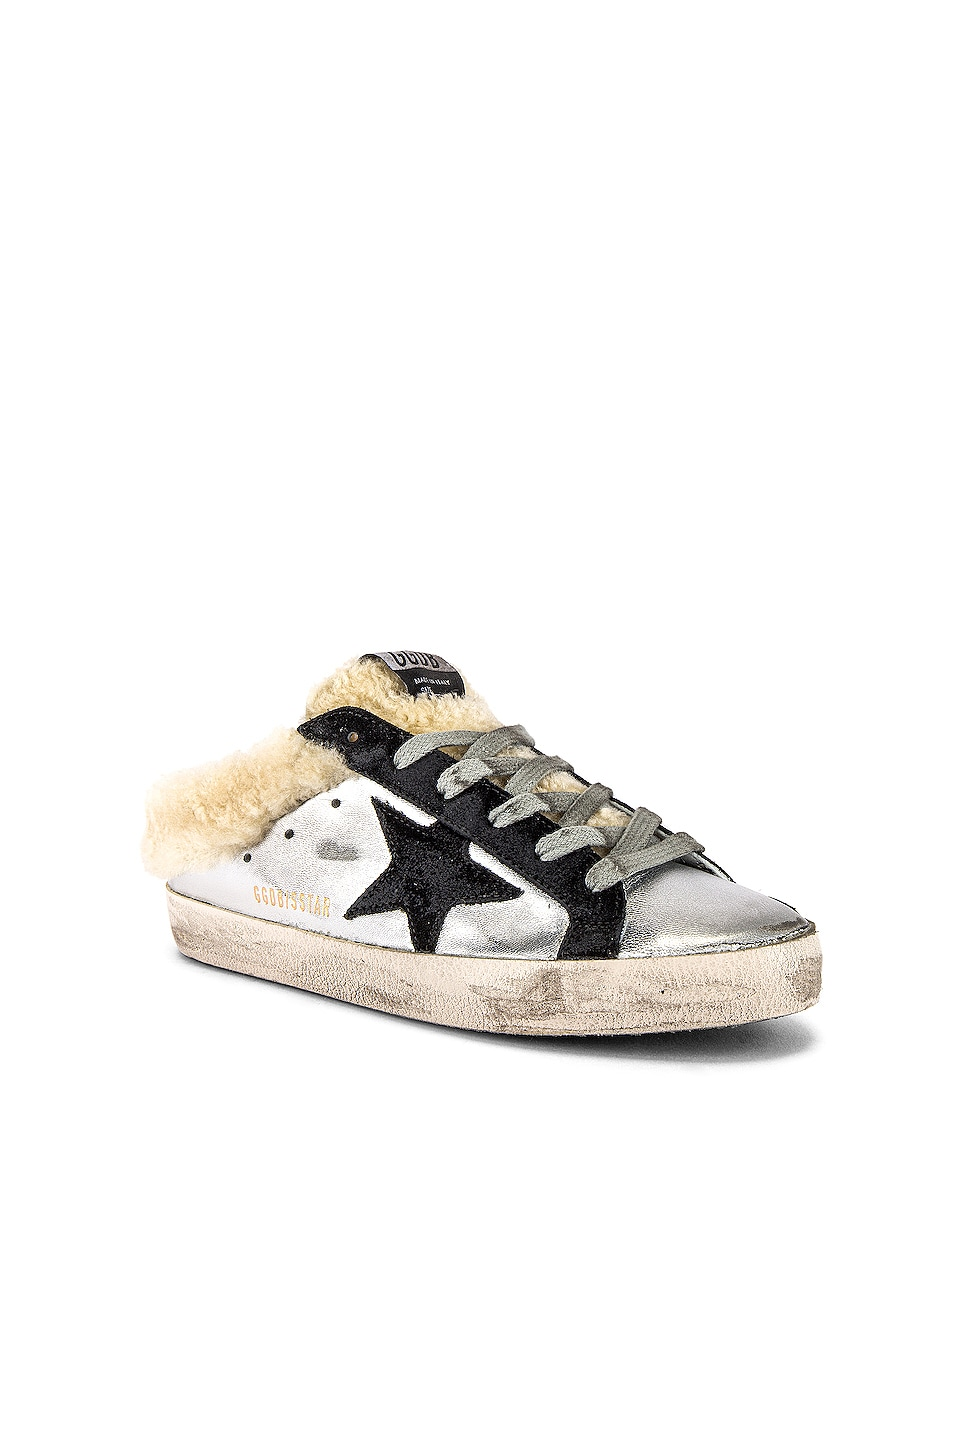 Golden Goose ZAPATILLA DEPORTIVA SUPERSTAR SABOT